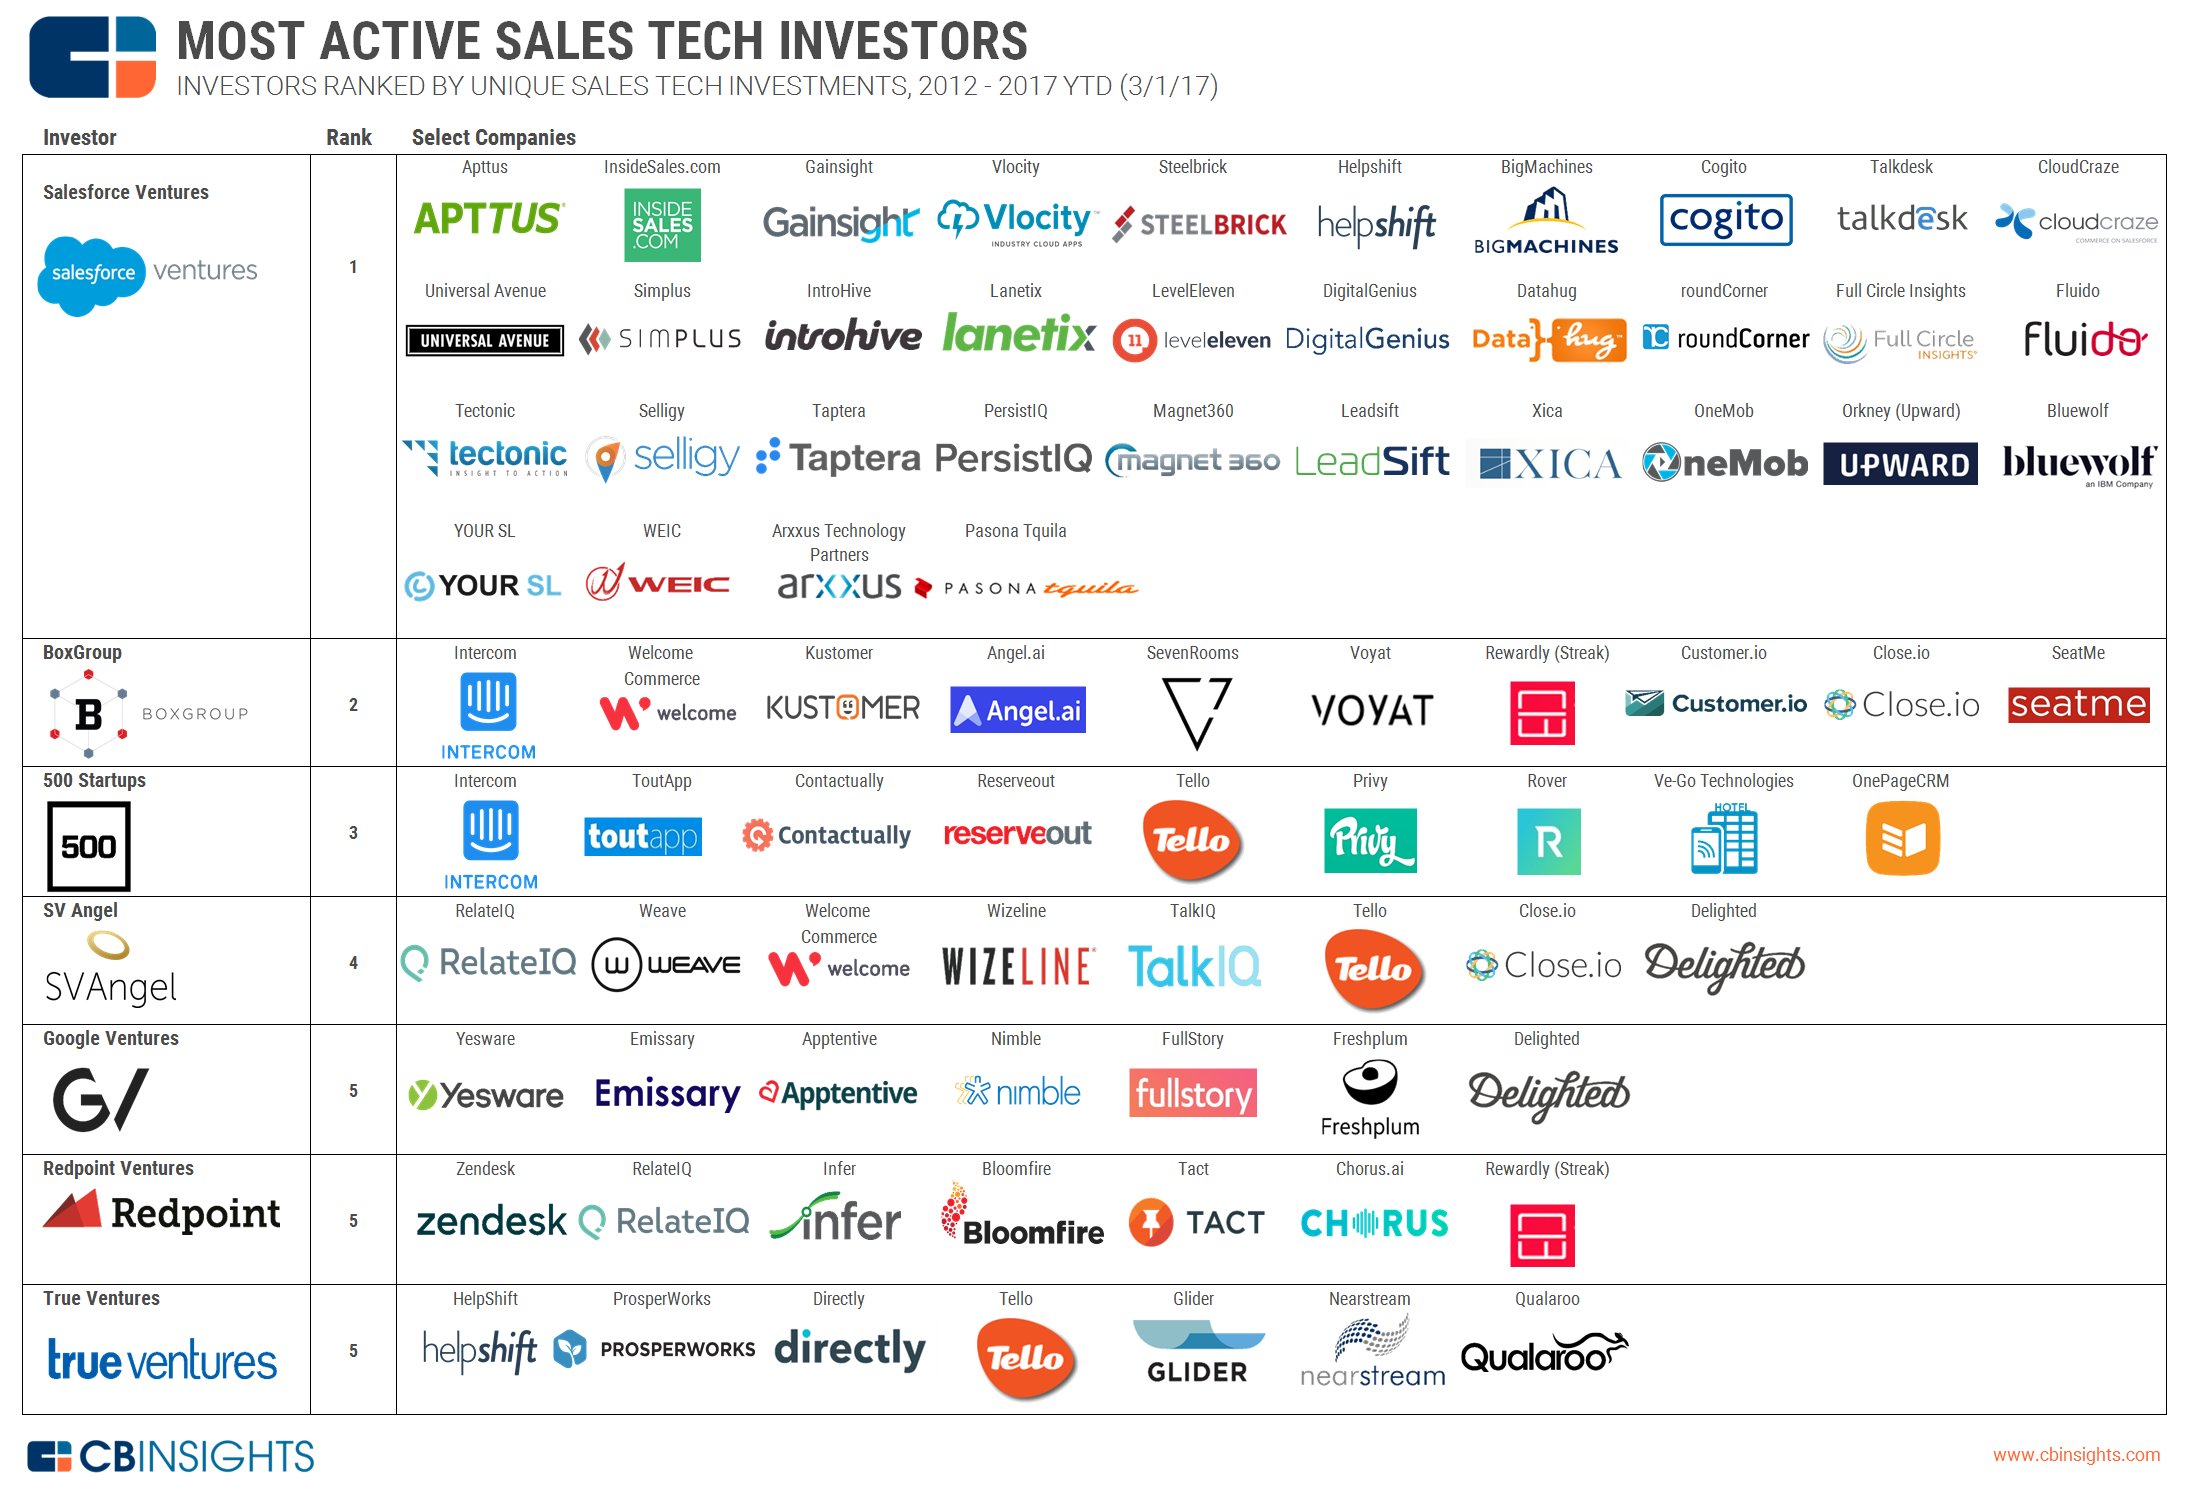 sales tech most active investors infographic 3.20.17